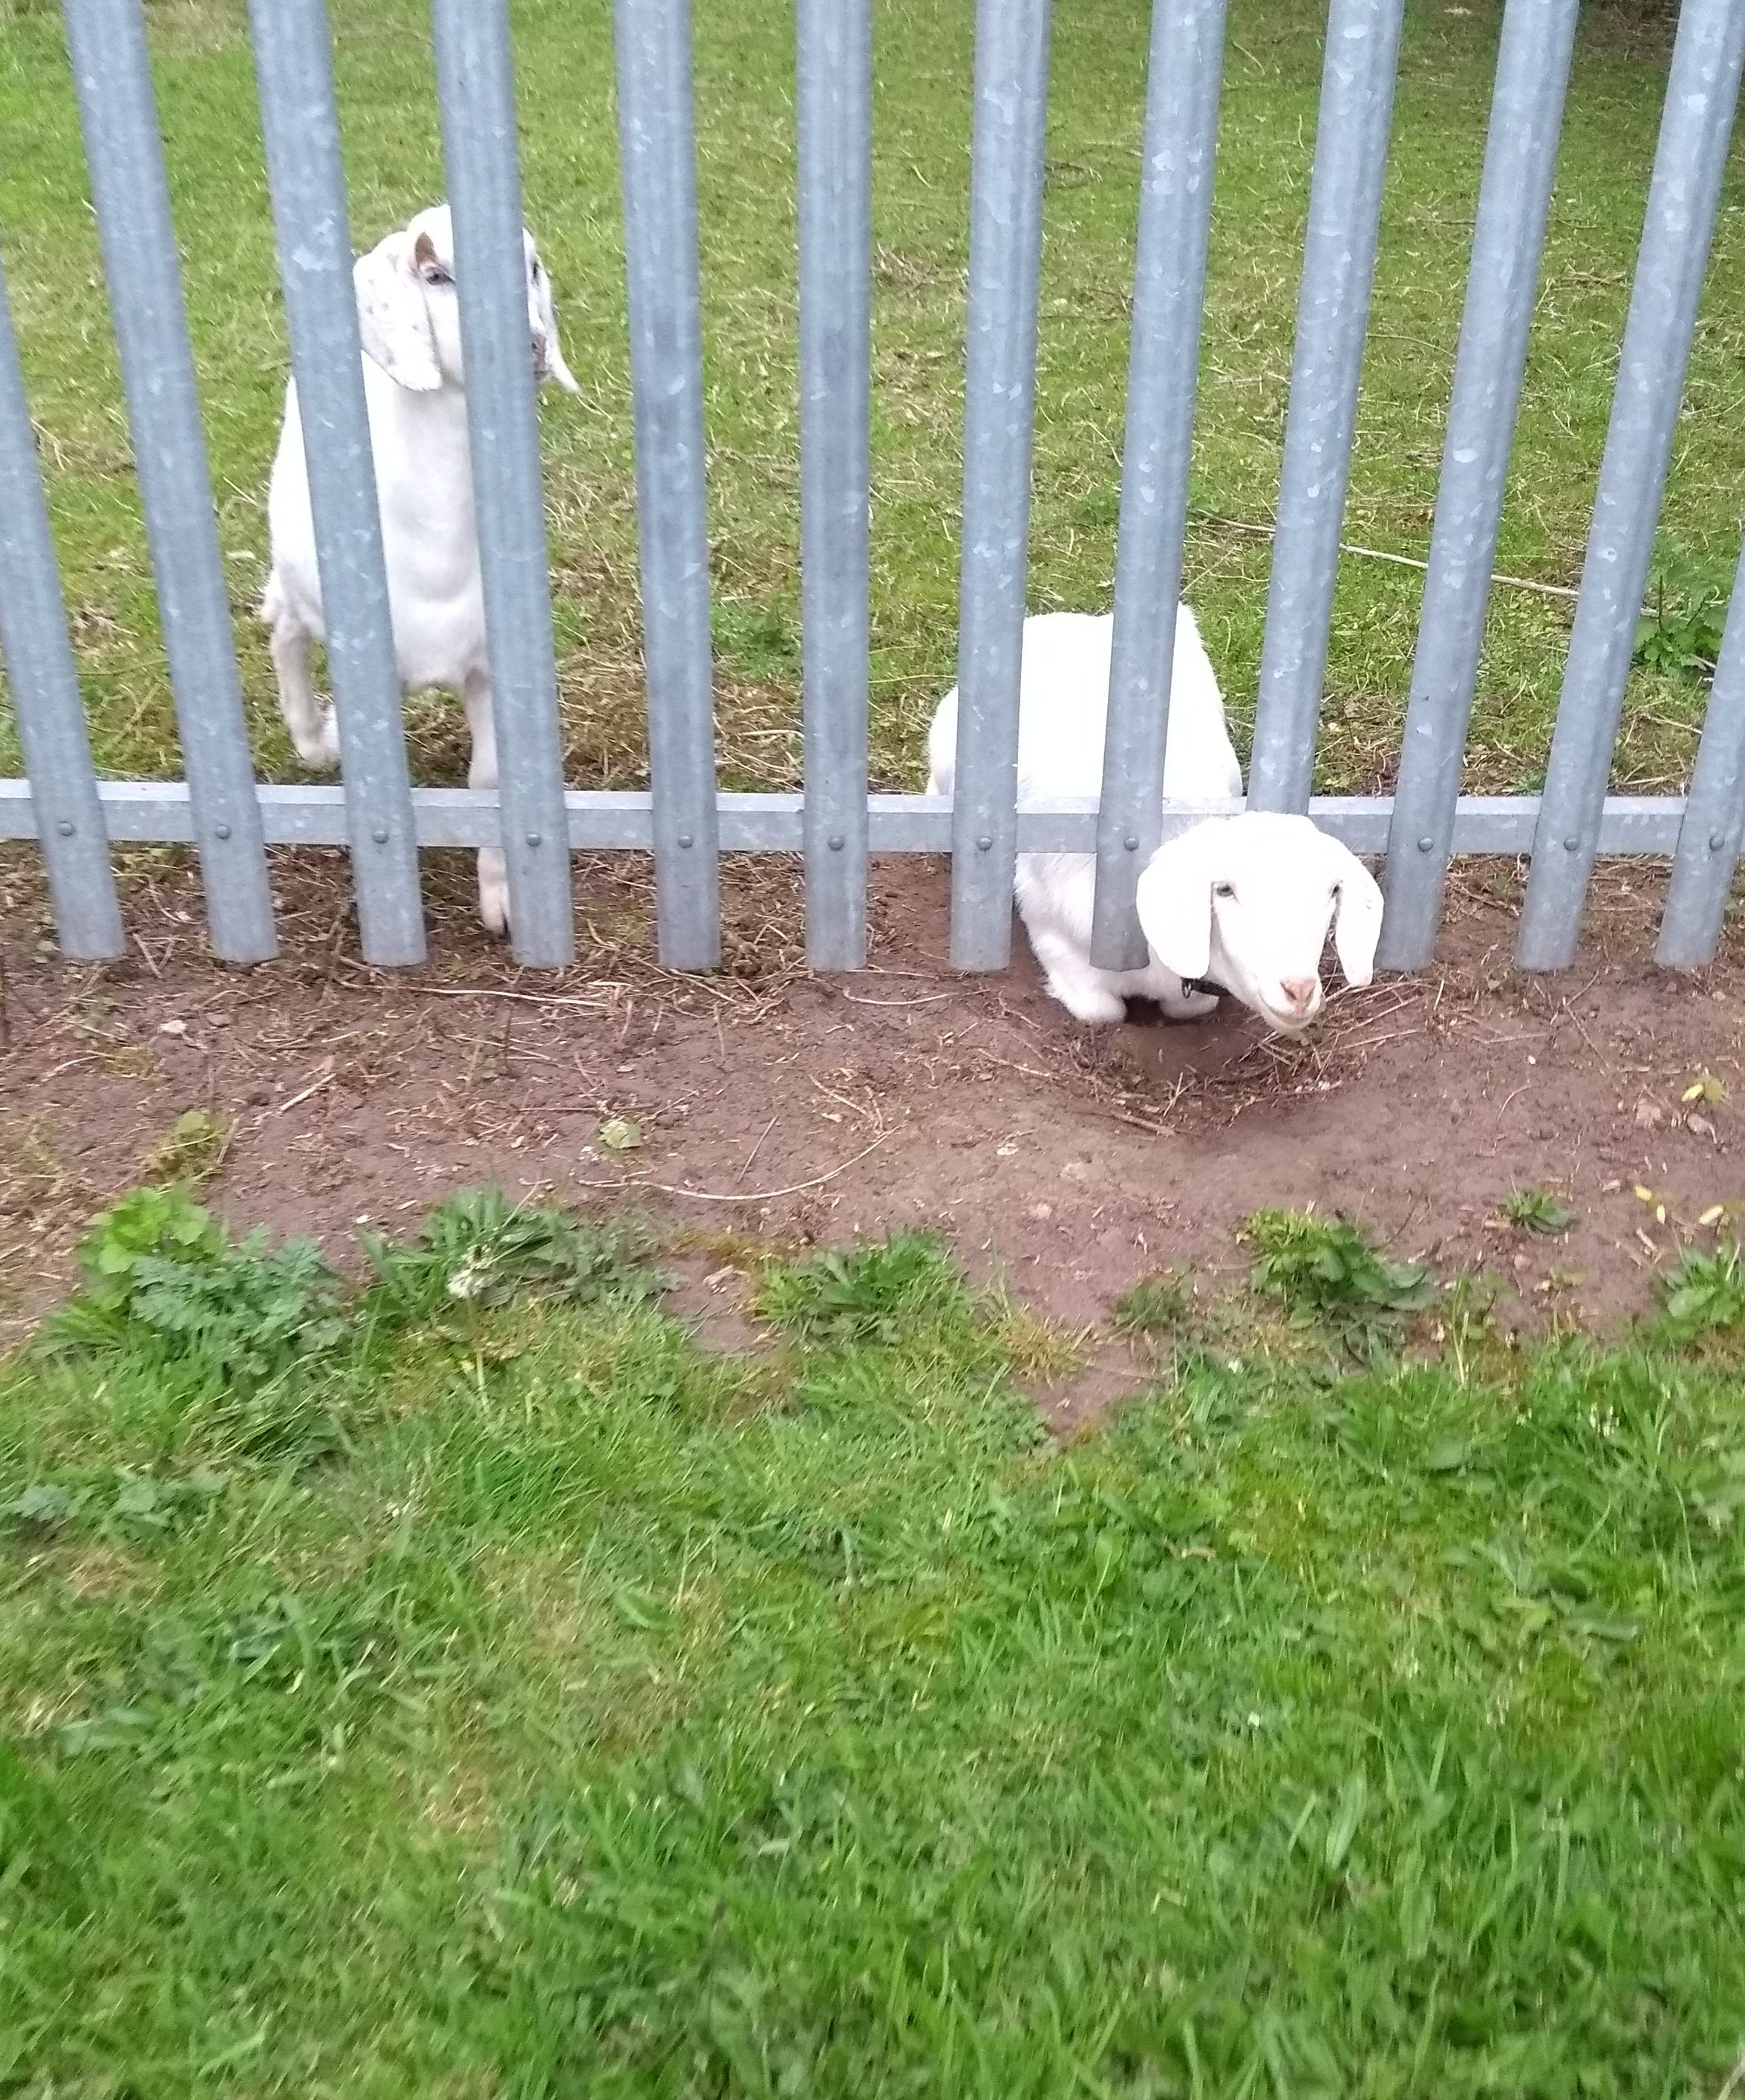 STOP KIDDING AROUND! GOAT GETS STUCK IN METAL FENCE | Small